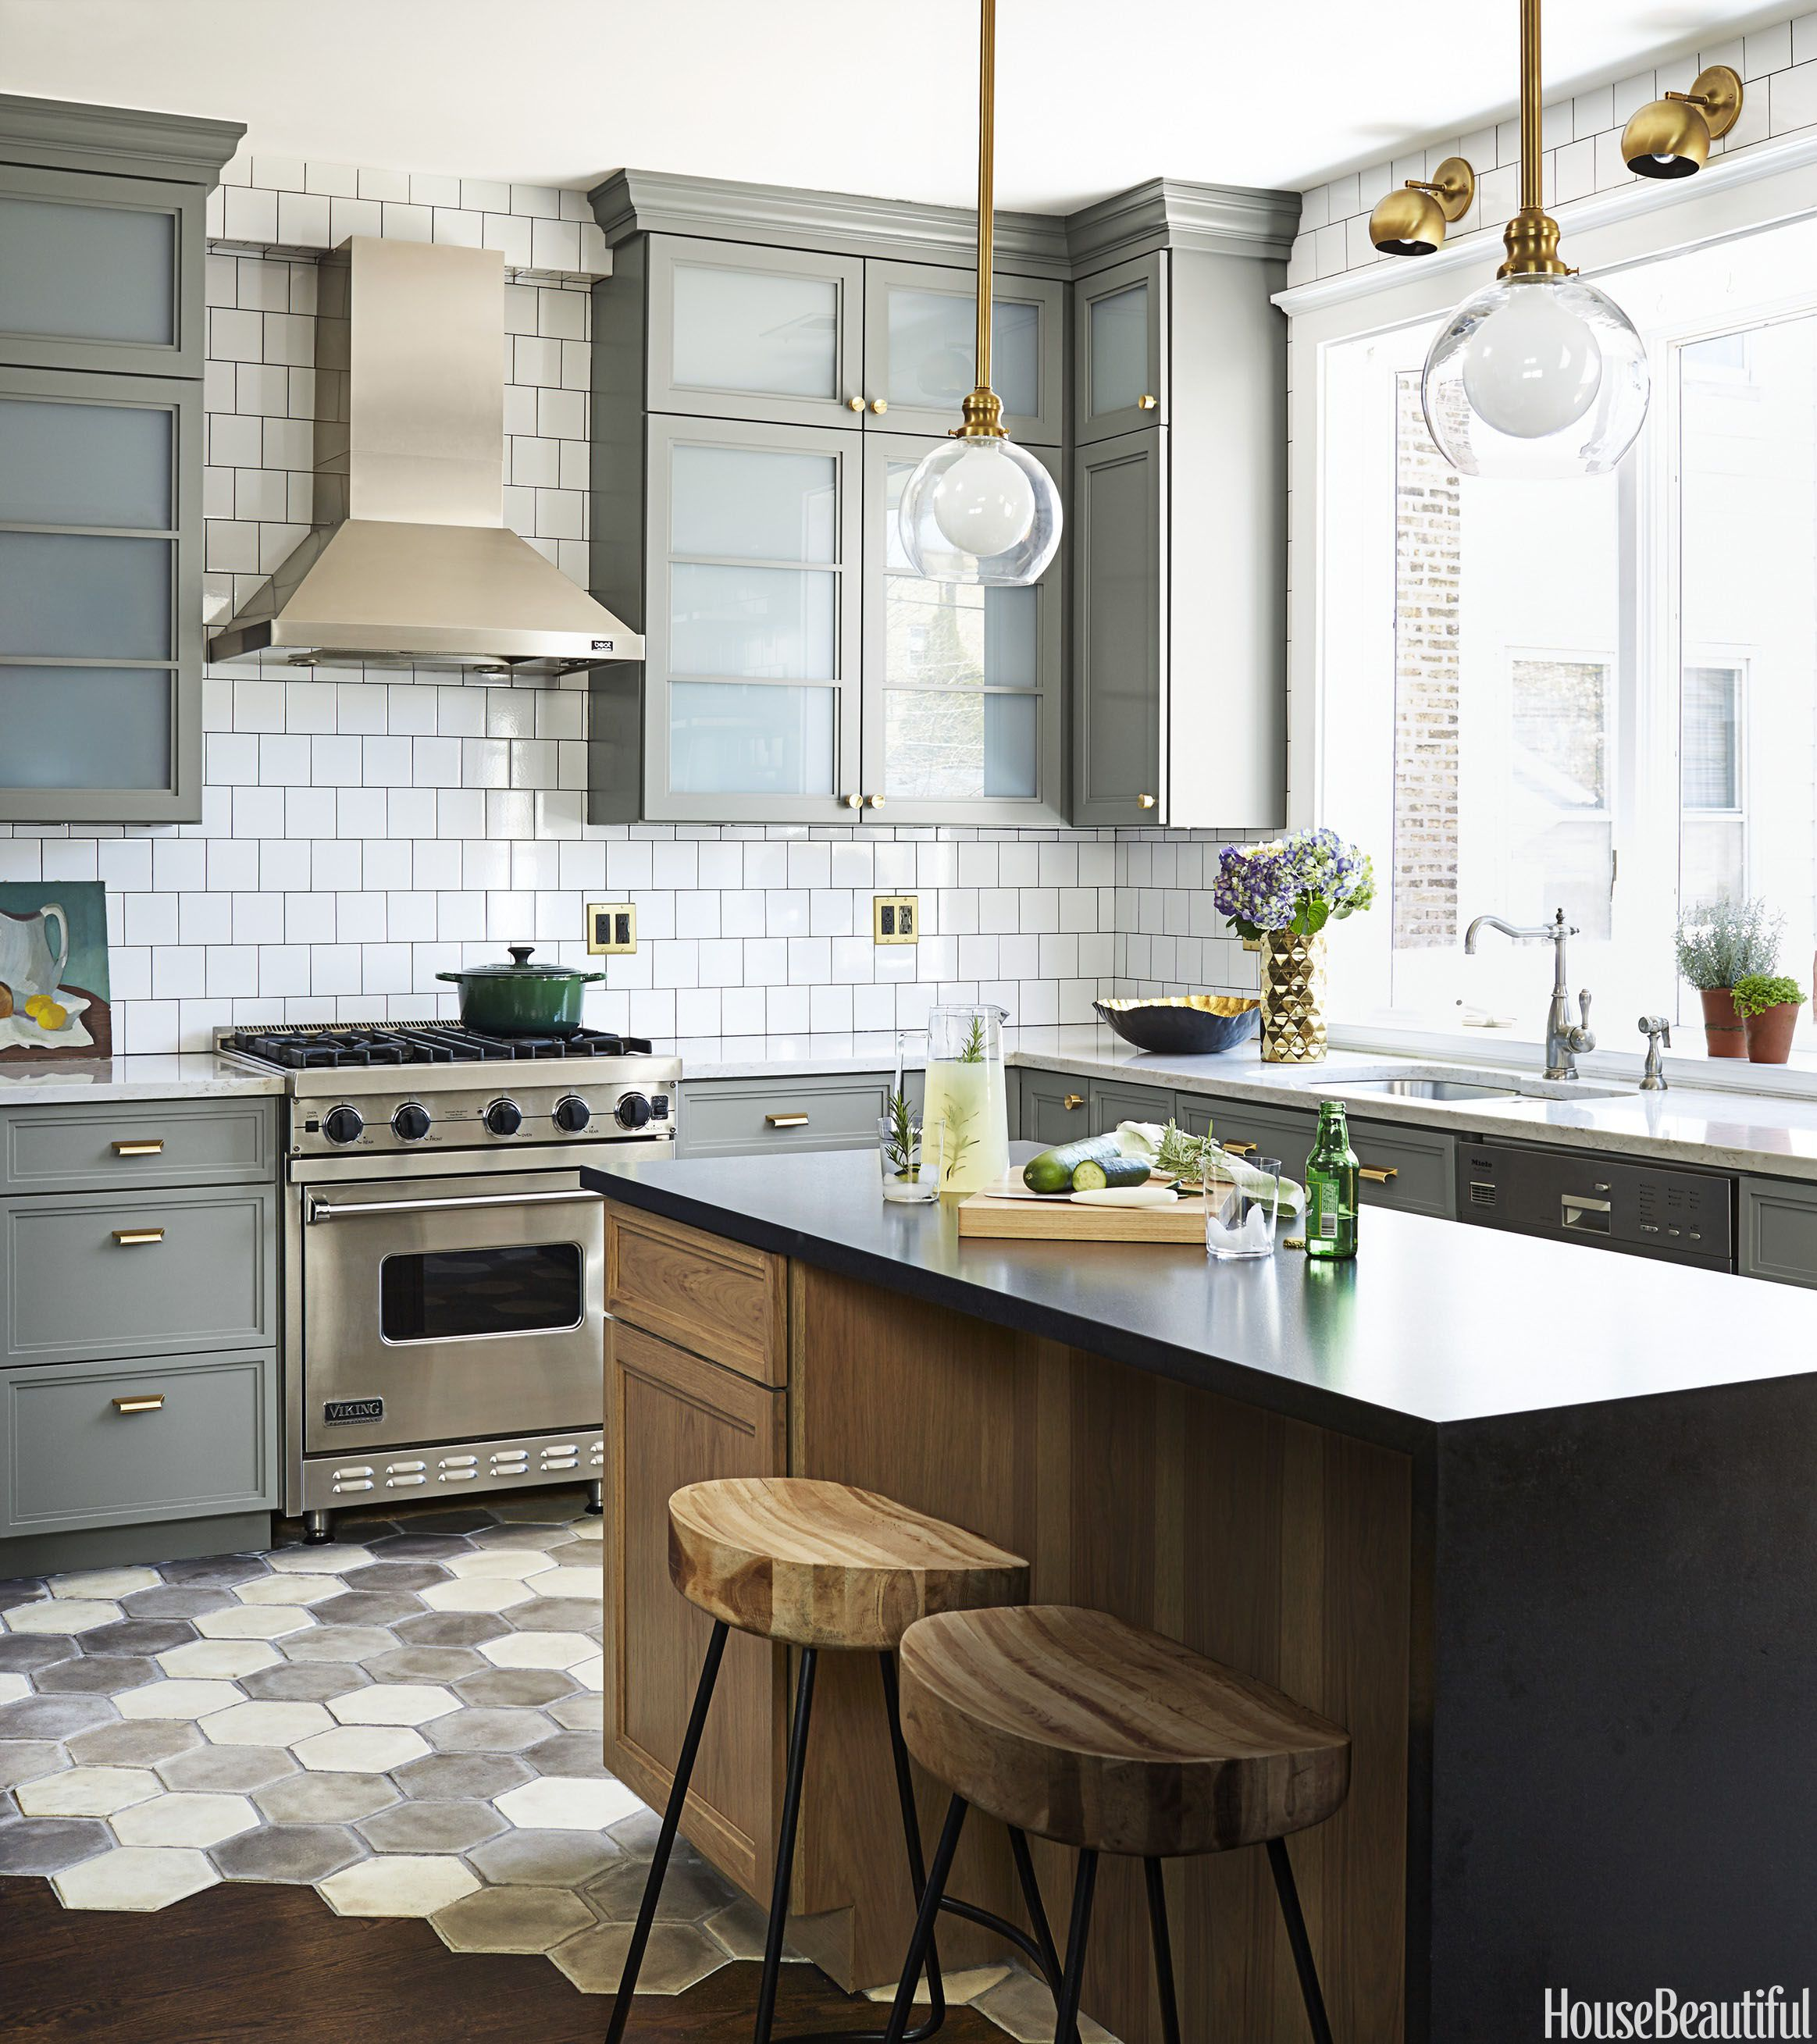 10 Totally Unique Ways To Tile Your Kitchen Floor